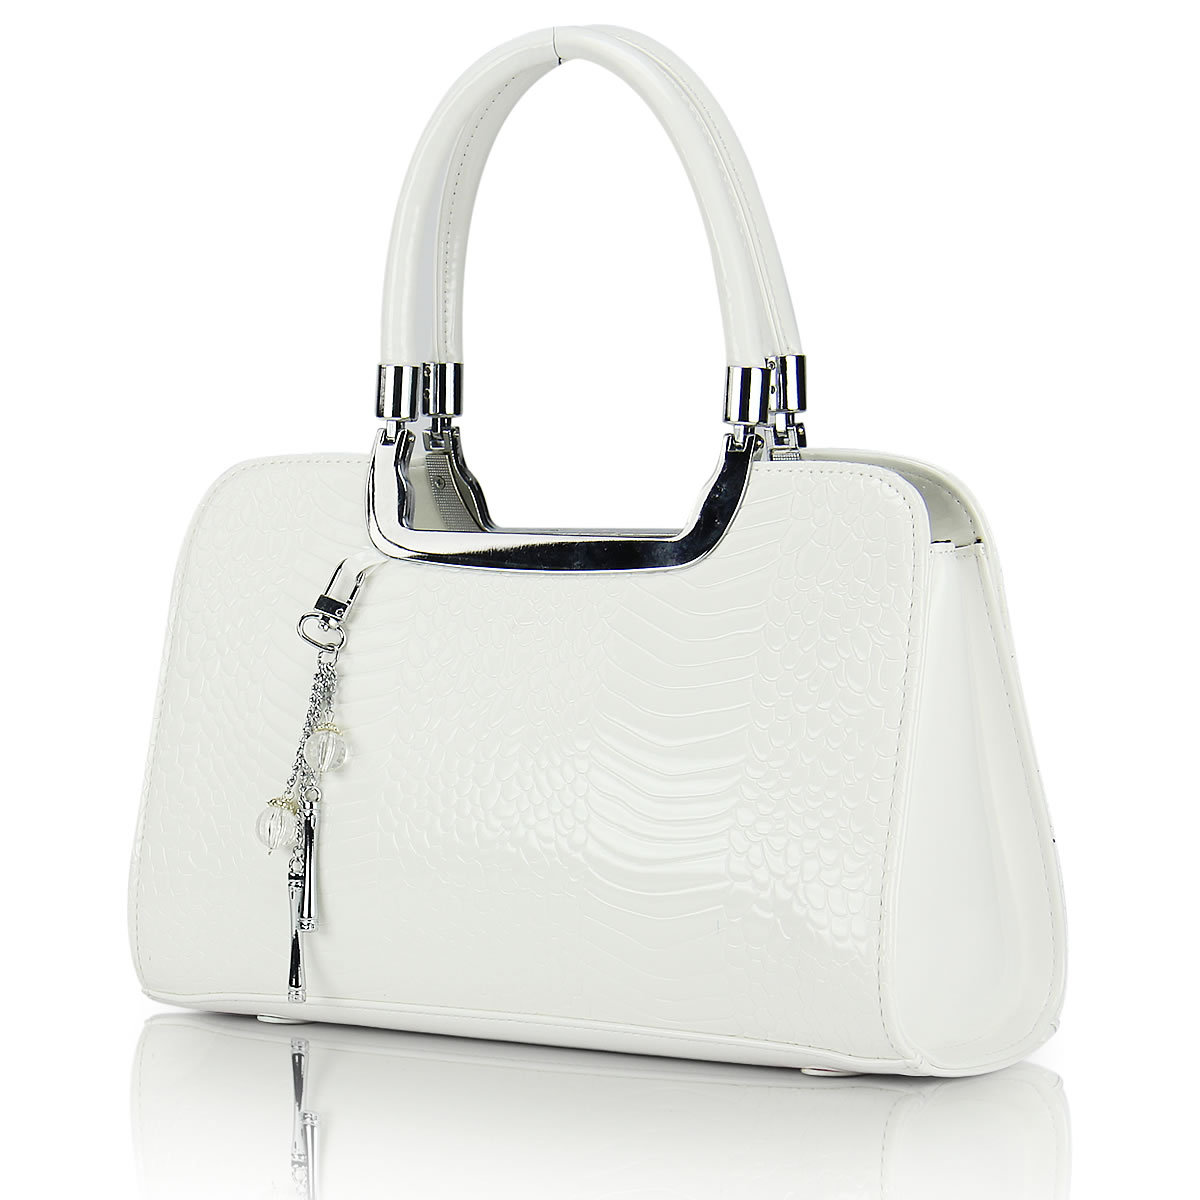 ad649679bcb2 White Handbags Online Shopping - Mc Luggage